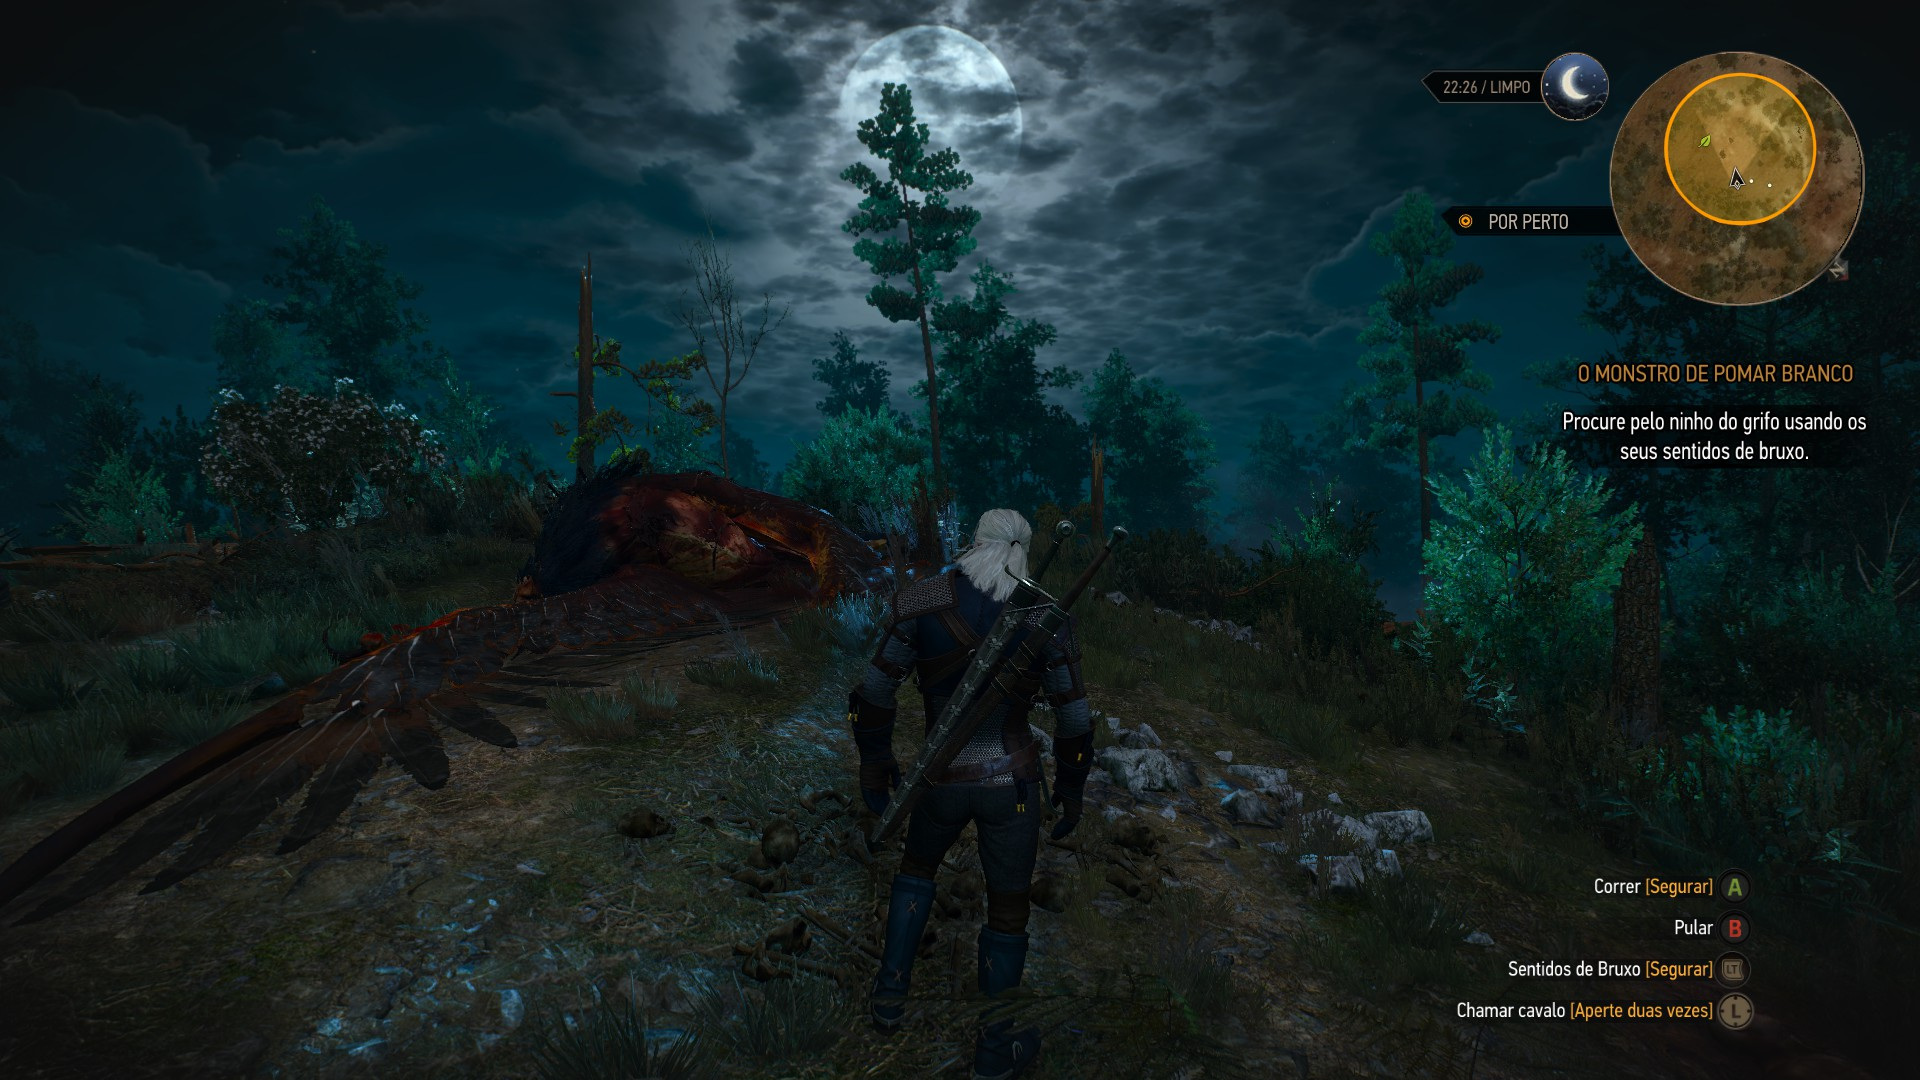 Currently playing The Witcher 3, could use some hints! | NeoGAF